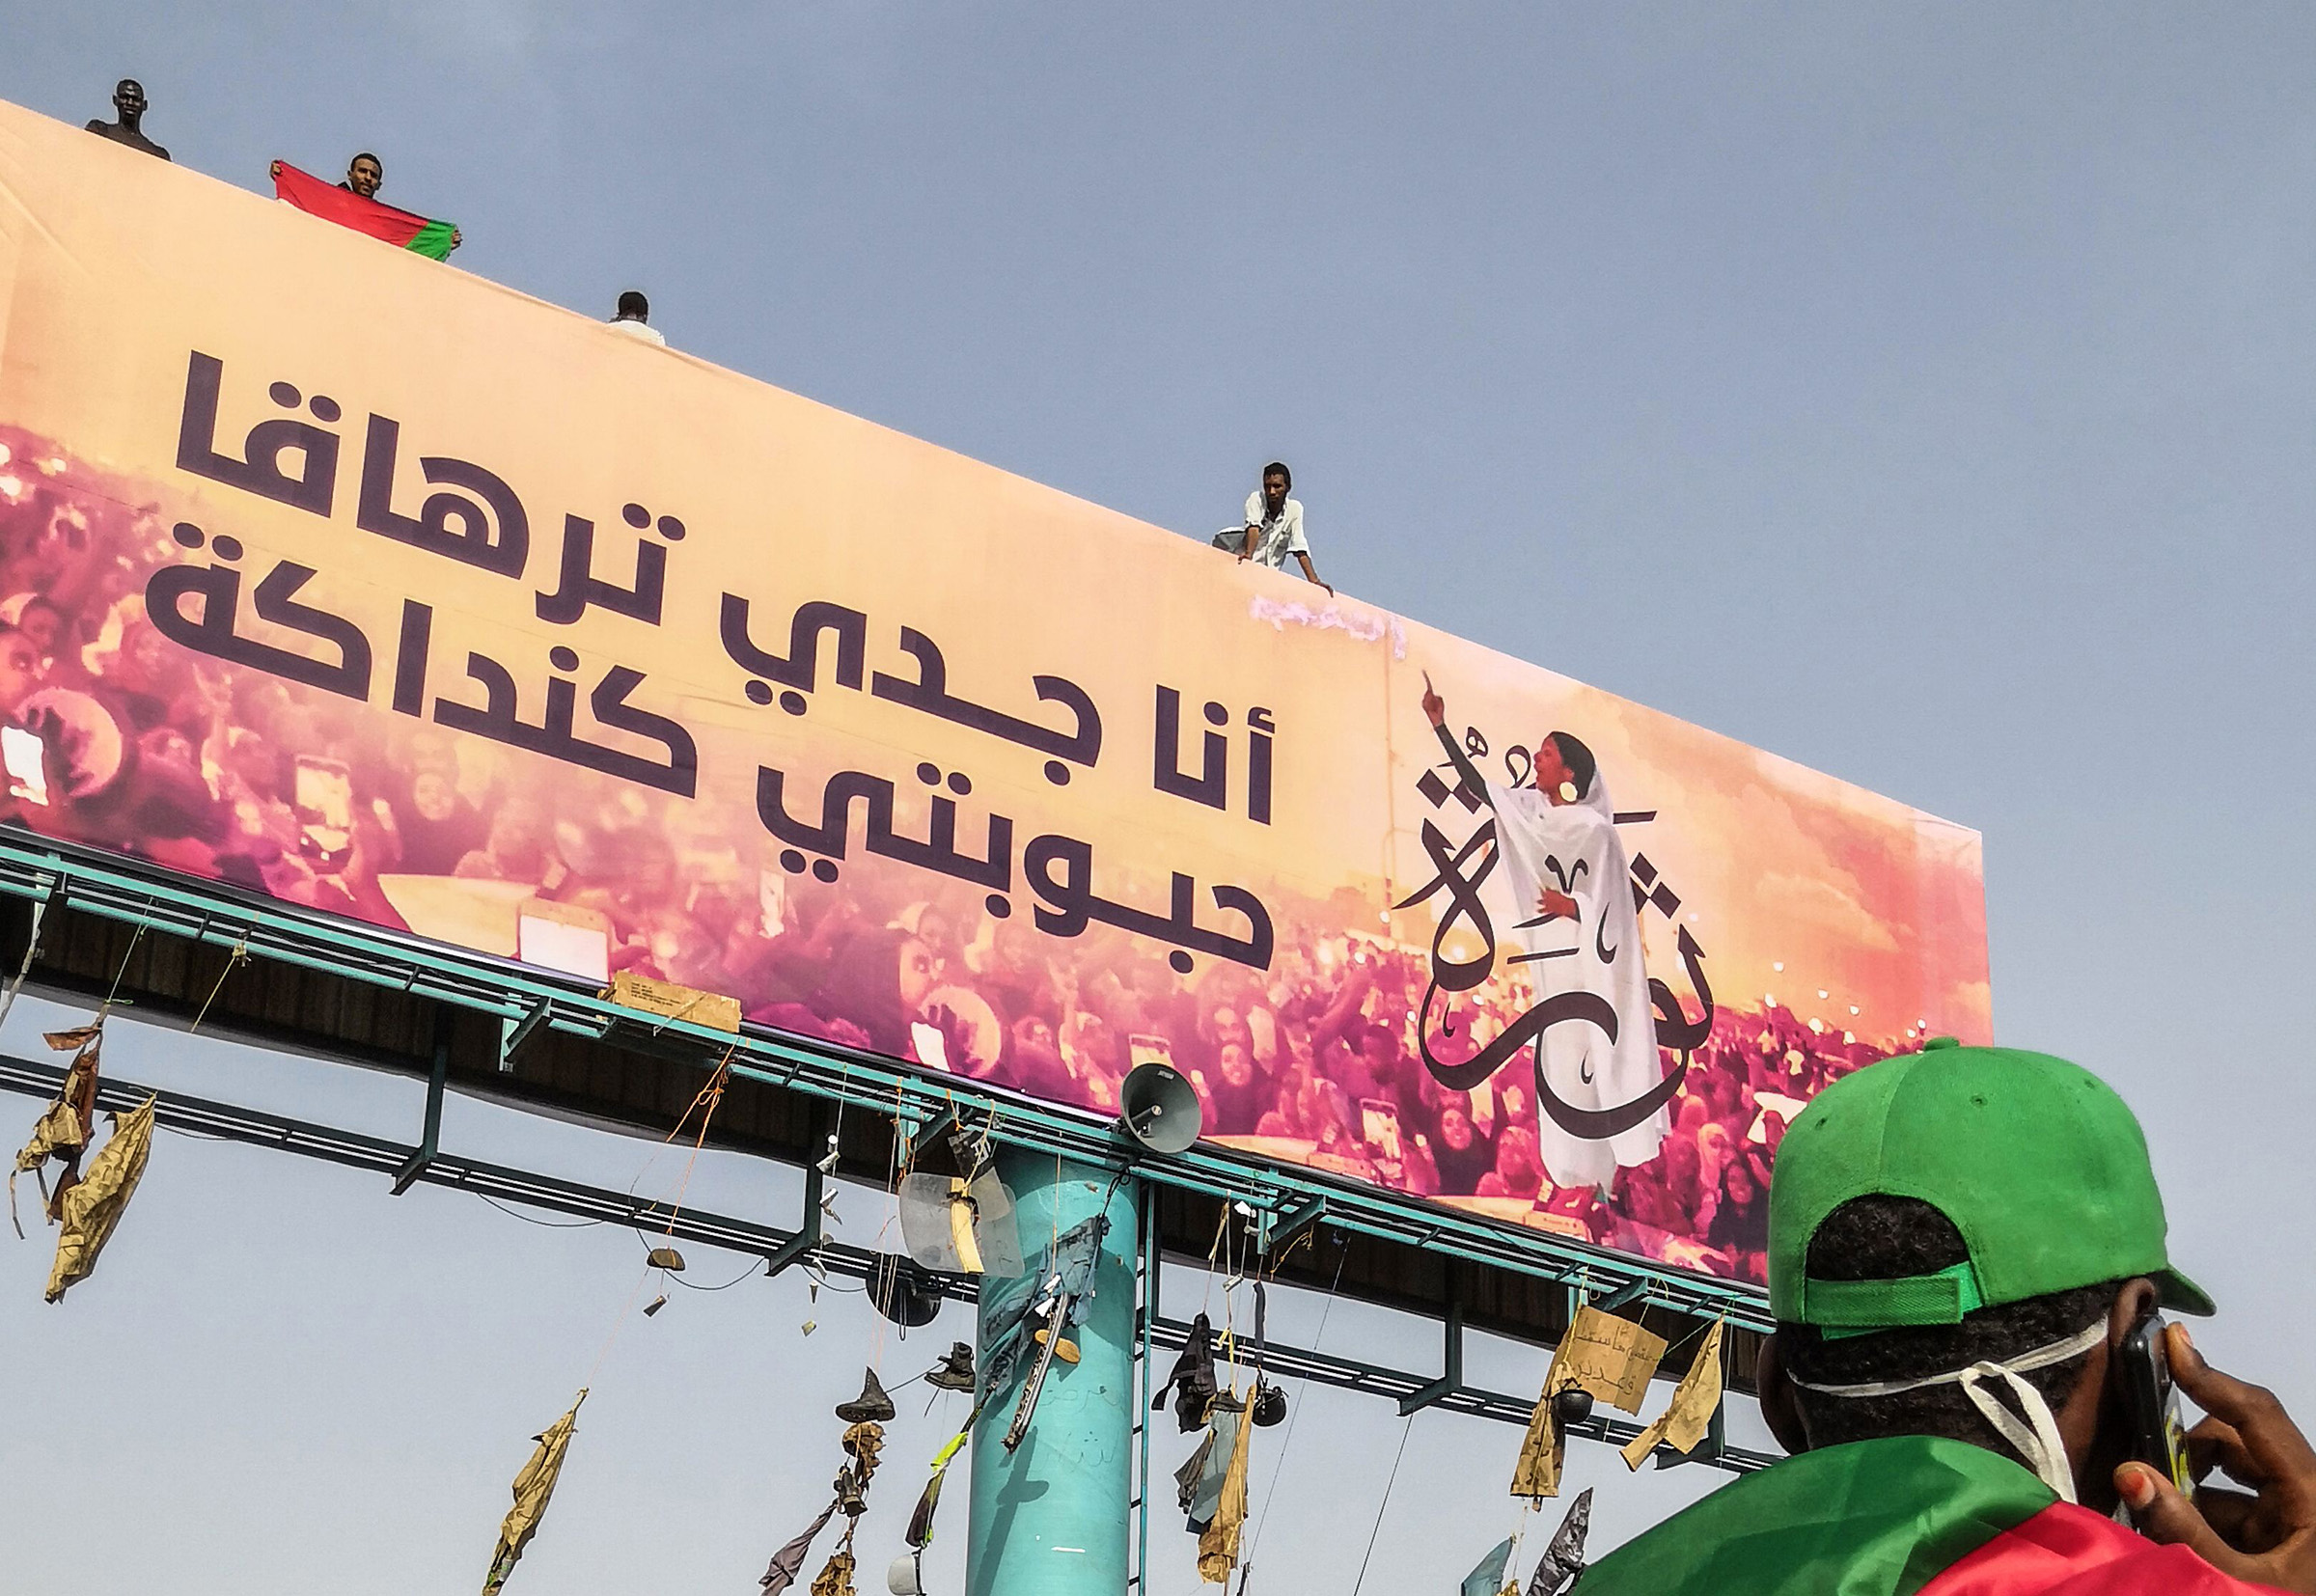 A Sudanese anti-regime protester speaks on his mobile telephone in Khartoum as he walks past a huge billboard bearing an image of Alaa Salah on on April 11, 2019.